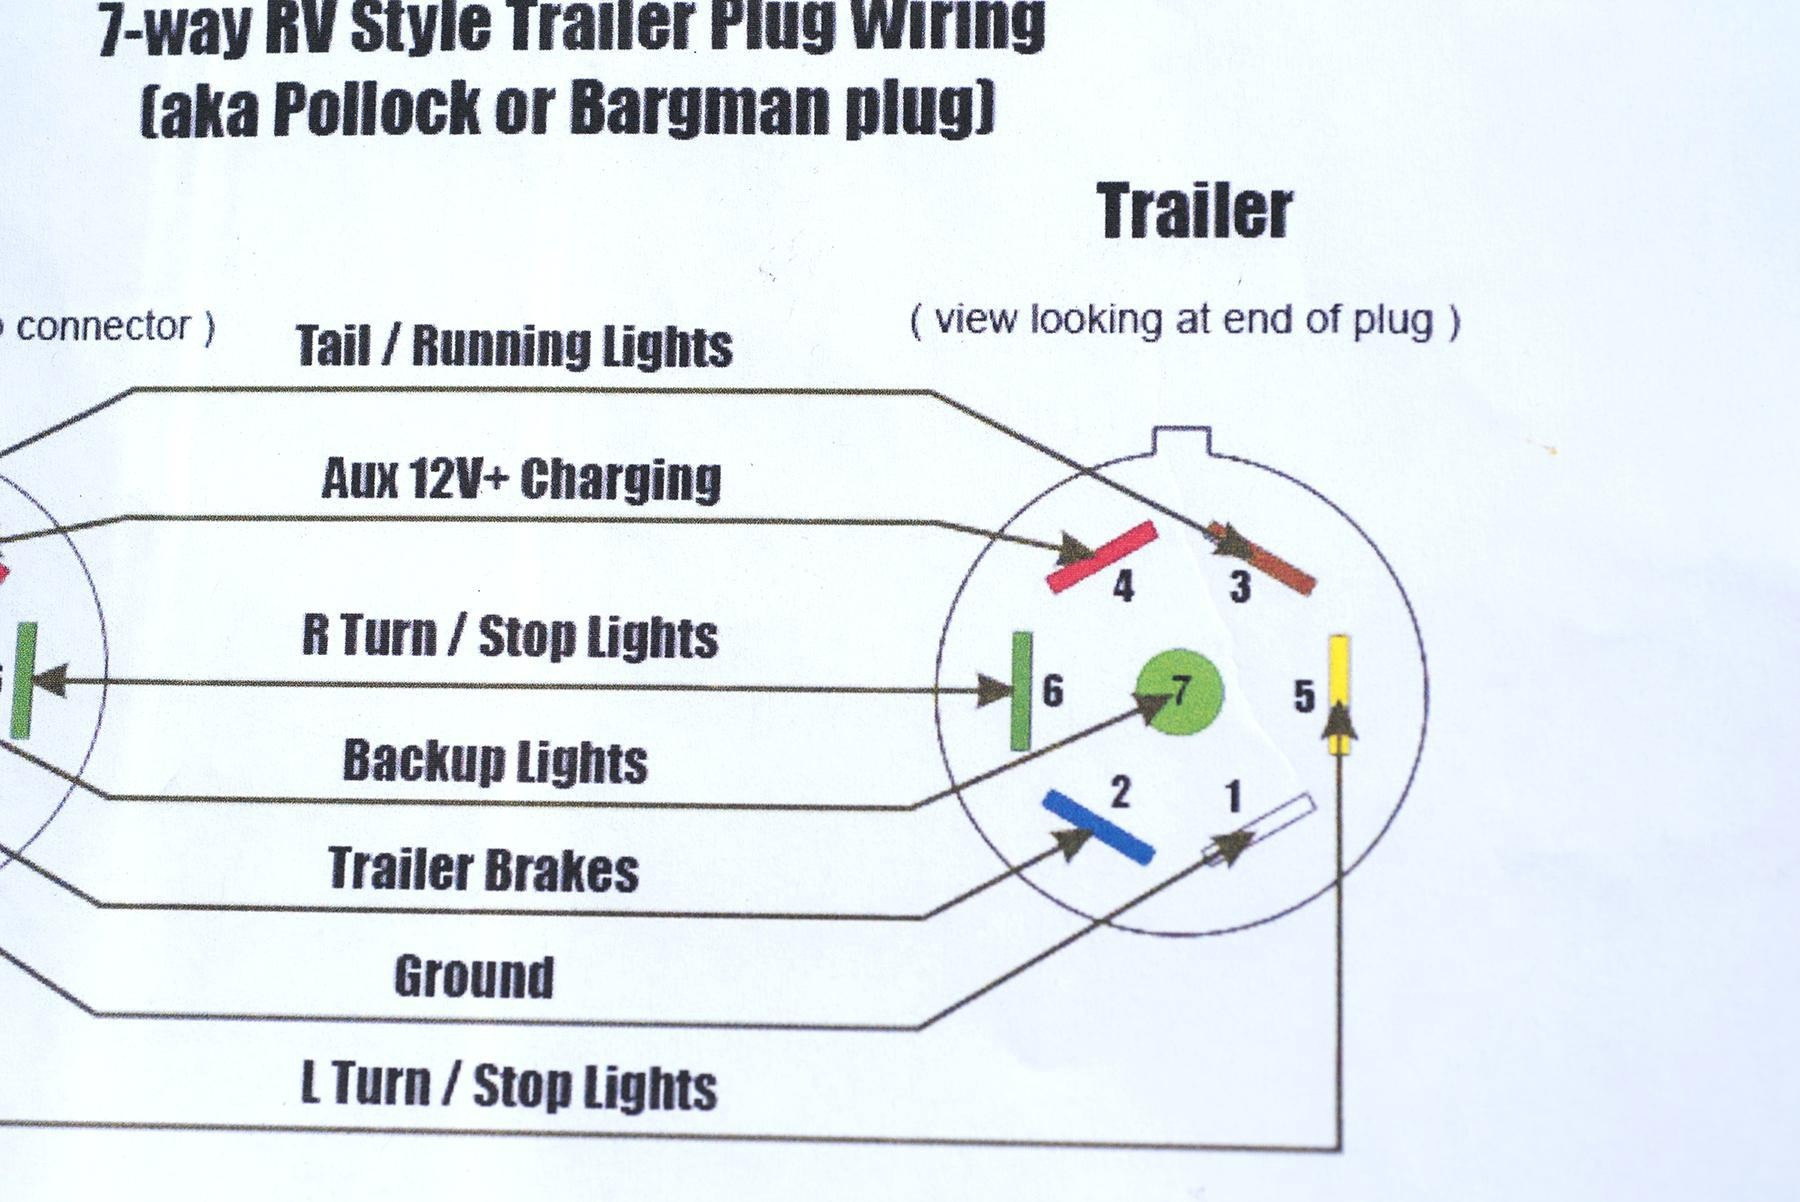 2015 Dodge Ram 7 Pin Trailer Wiring Diagram | Wiring Diagram - Dodge Trailer Wiring Diagram 7 Pin